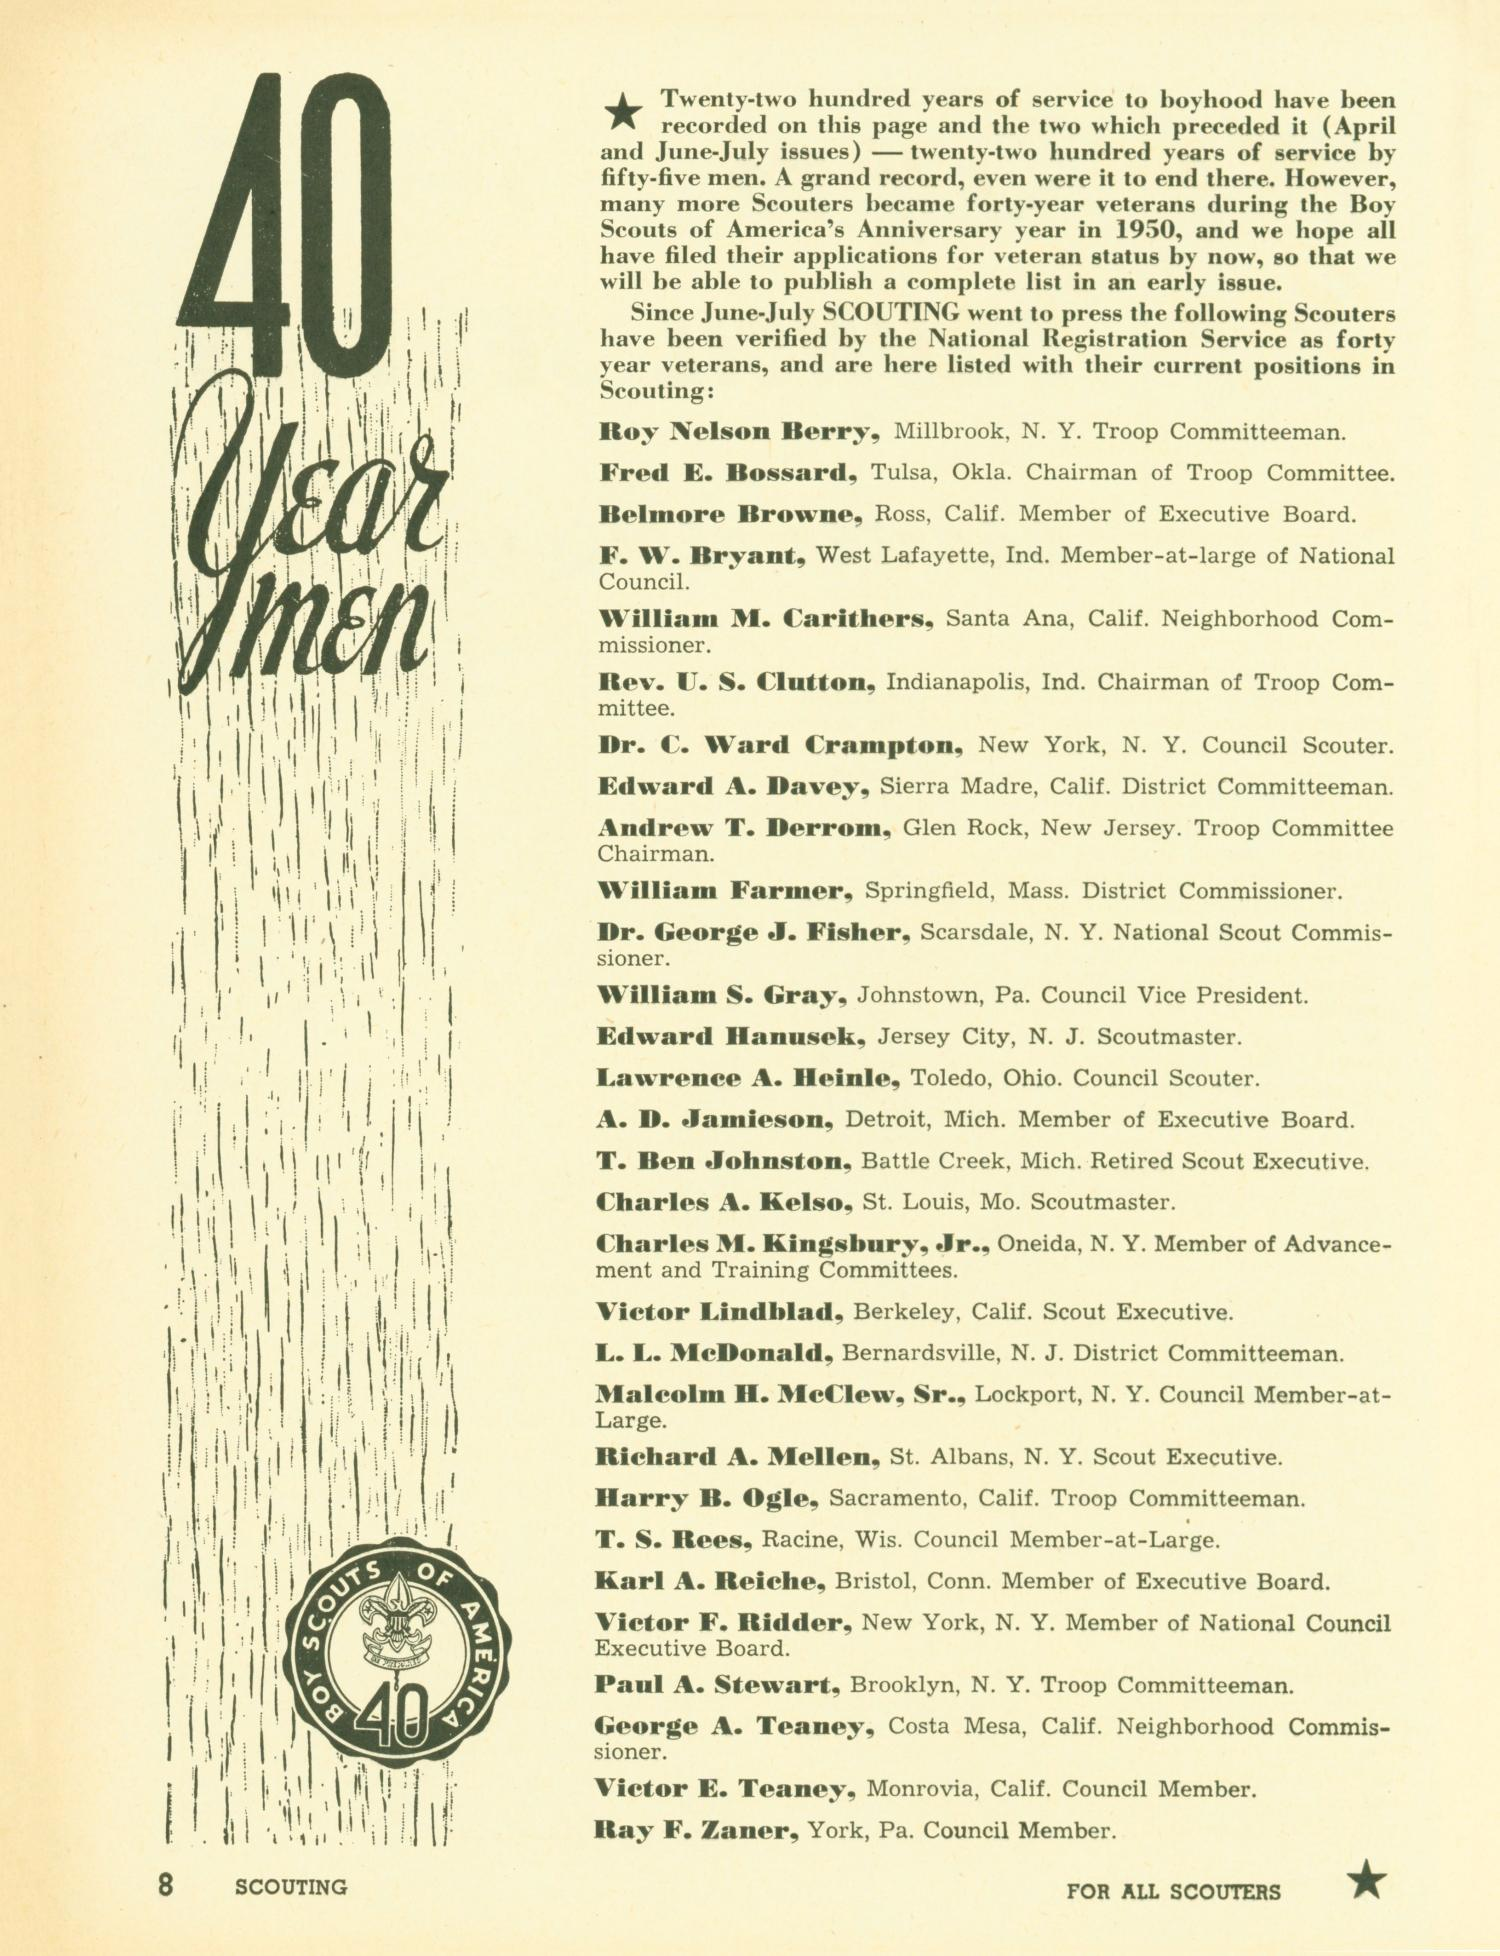 Scouting, Volume 38, Number 10, December 1950                                                                                                      8